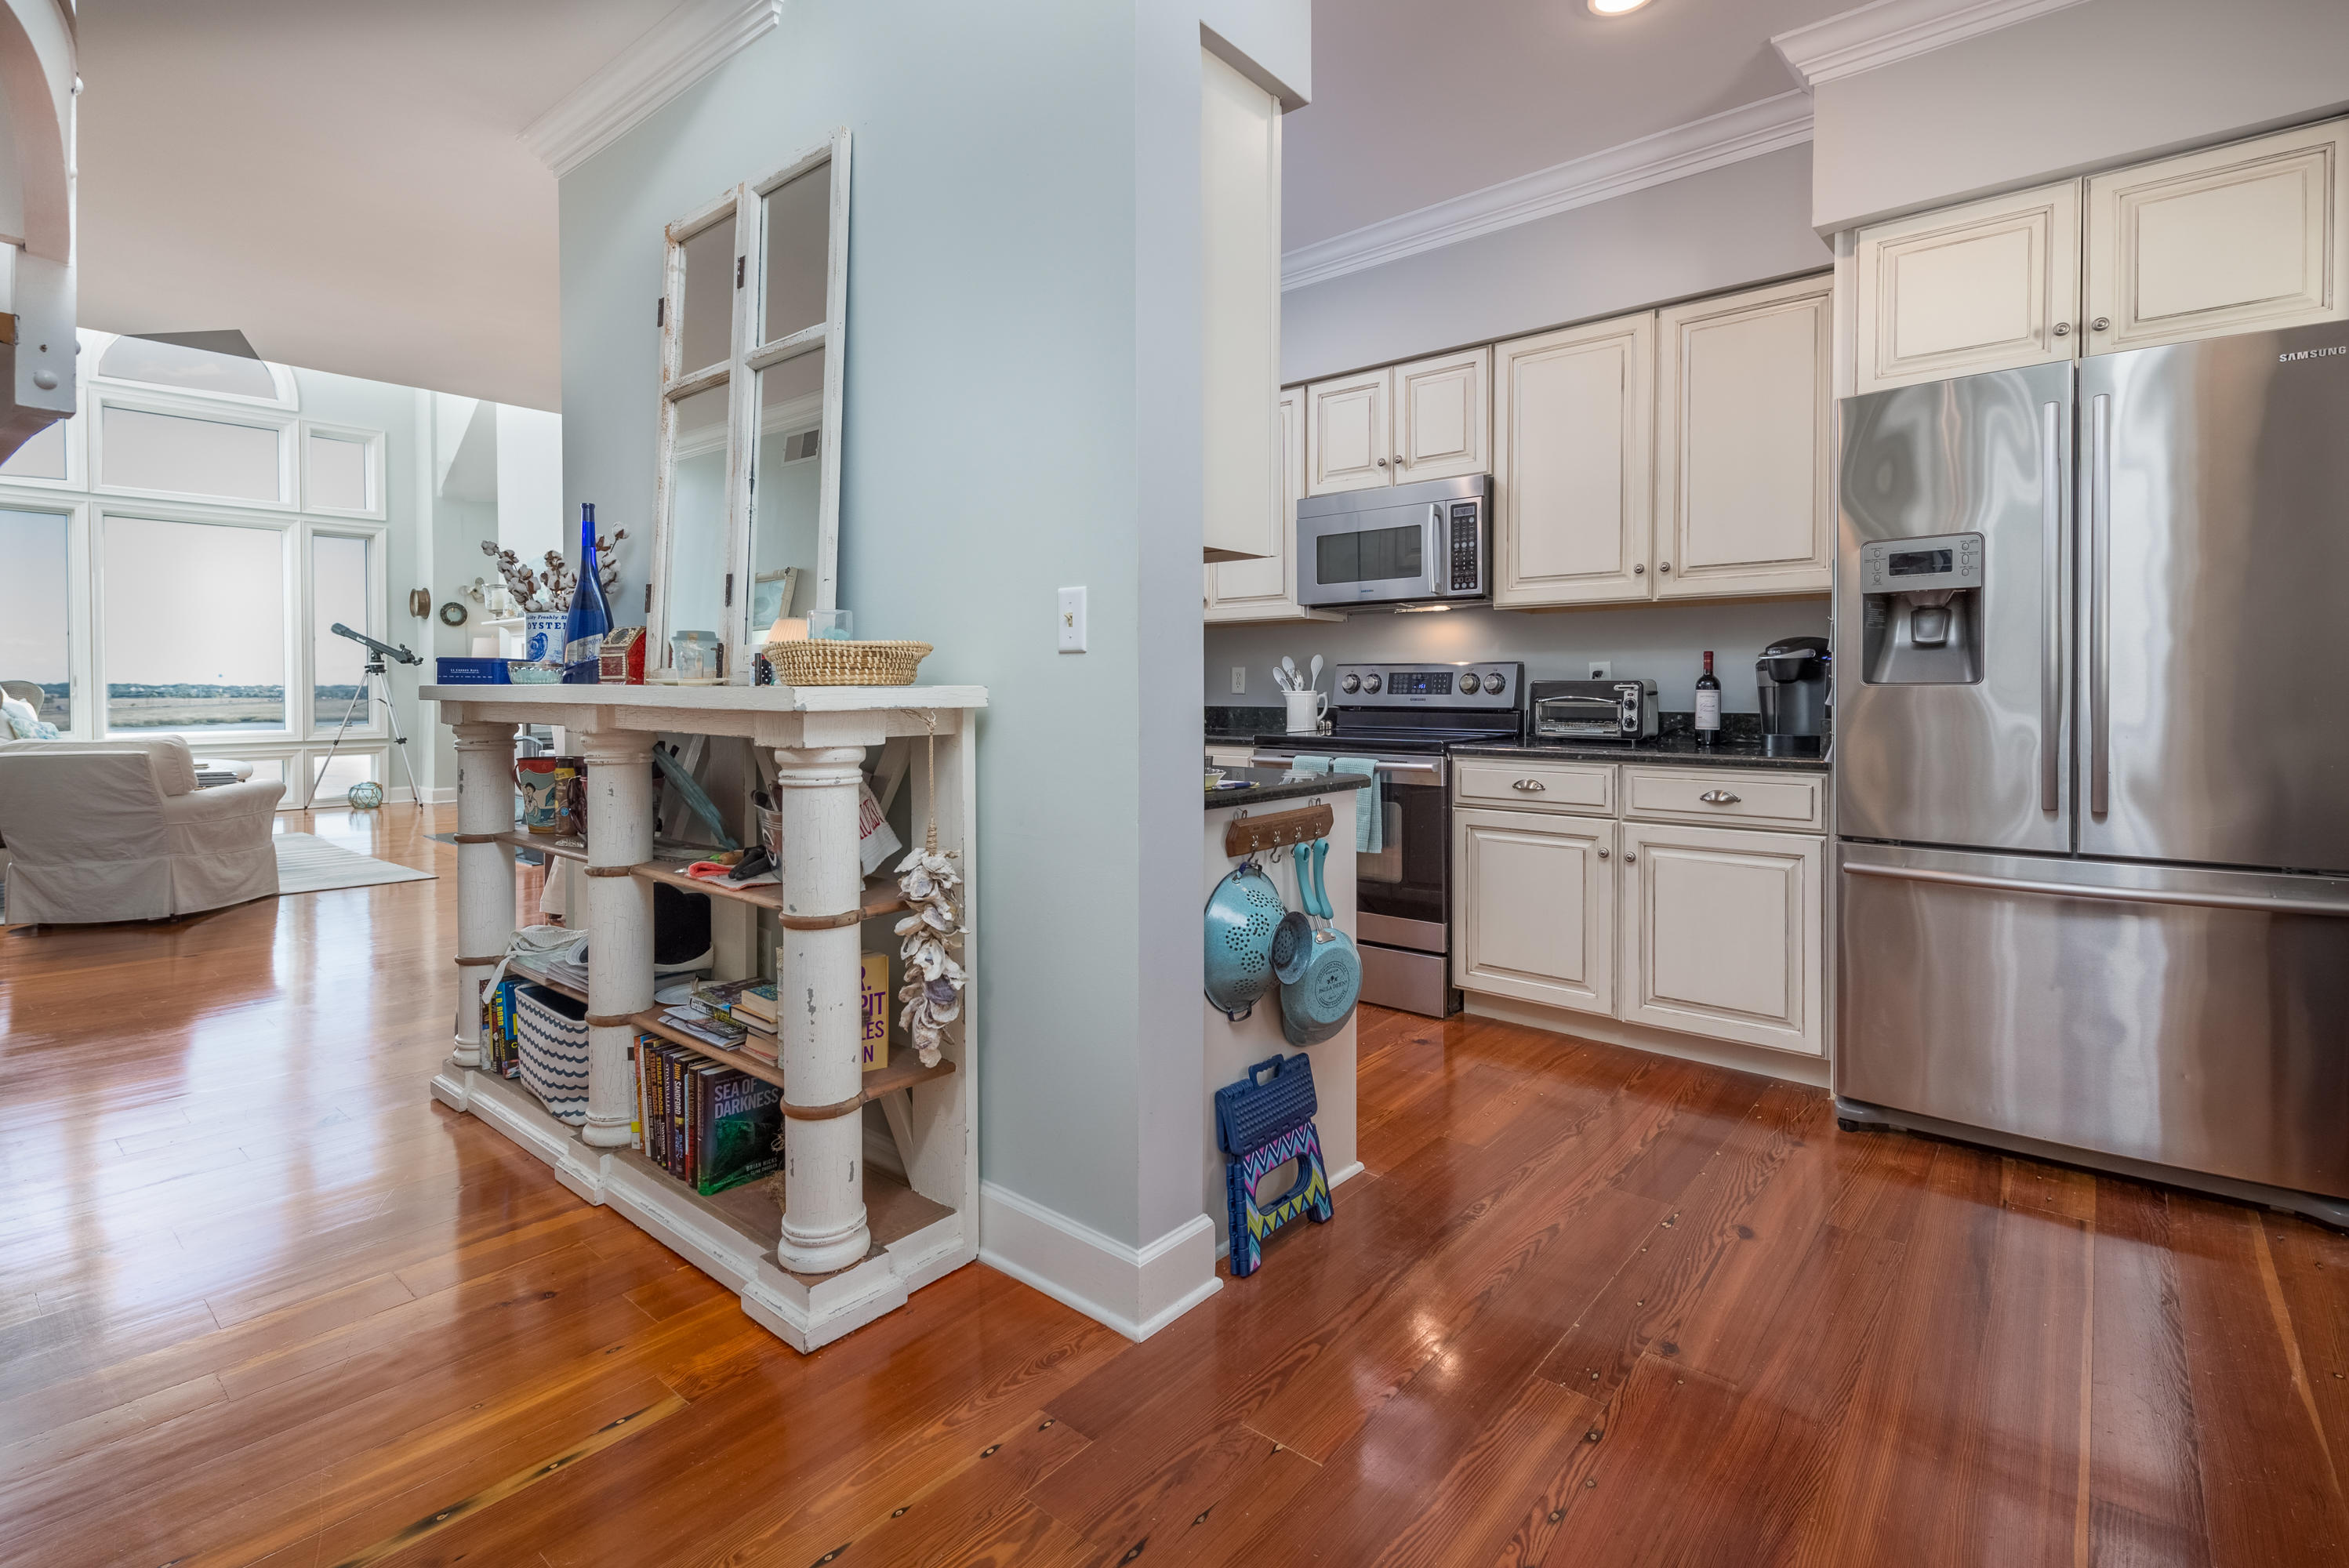 Simmons Pointe Homes For Sale - 1551 Simmons, Mount Pleasant, SC - 31